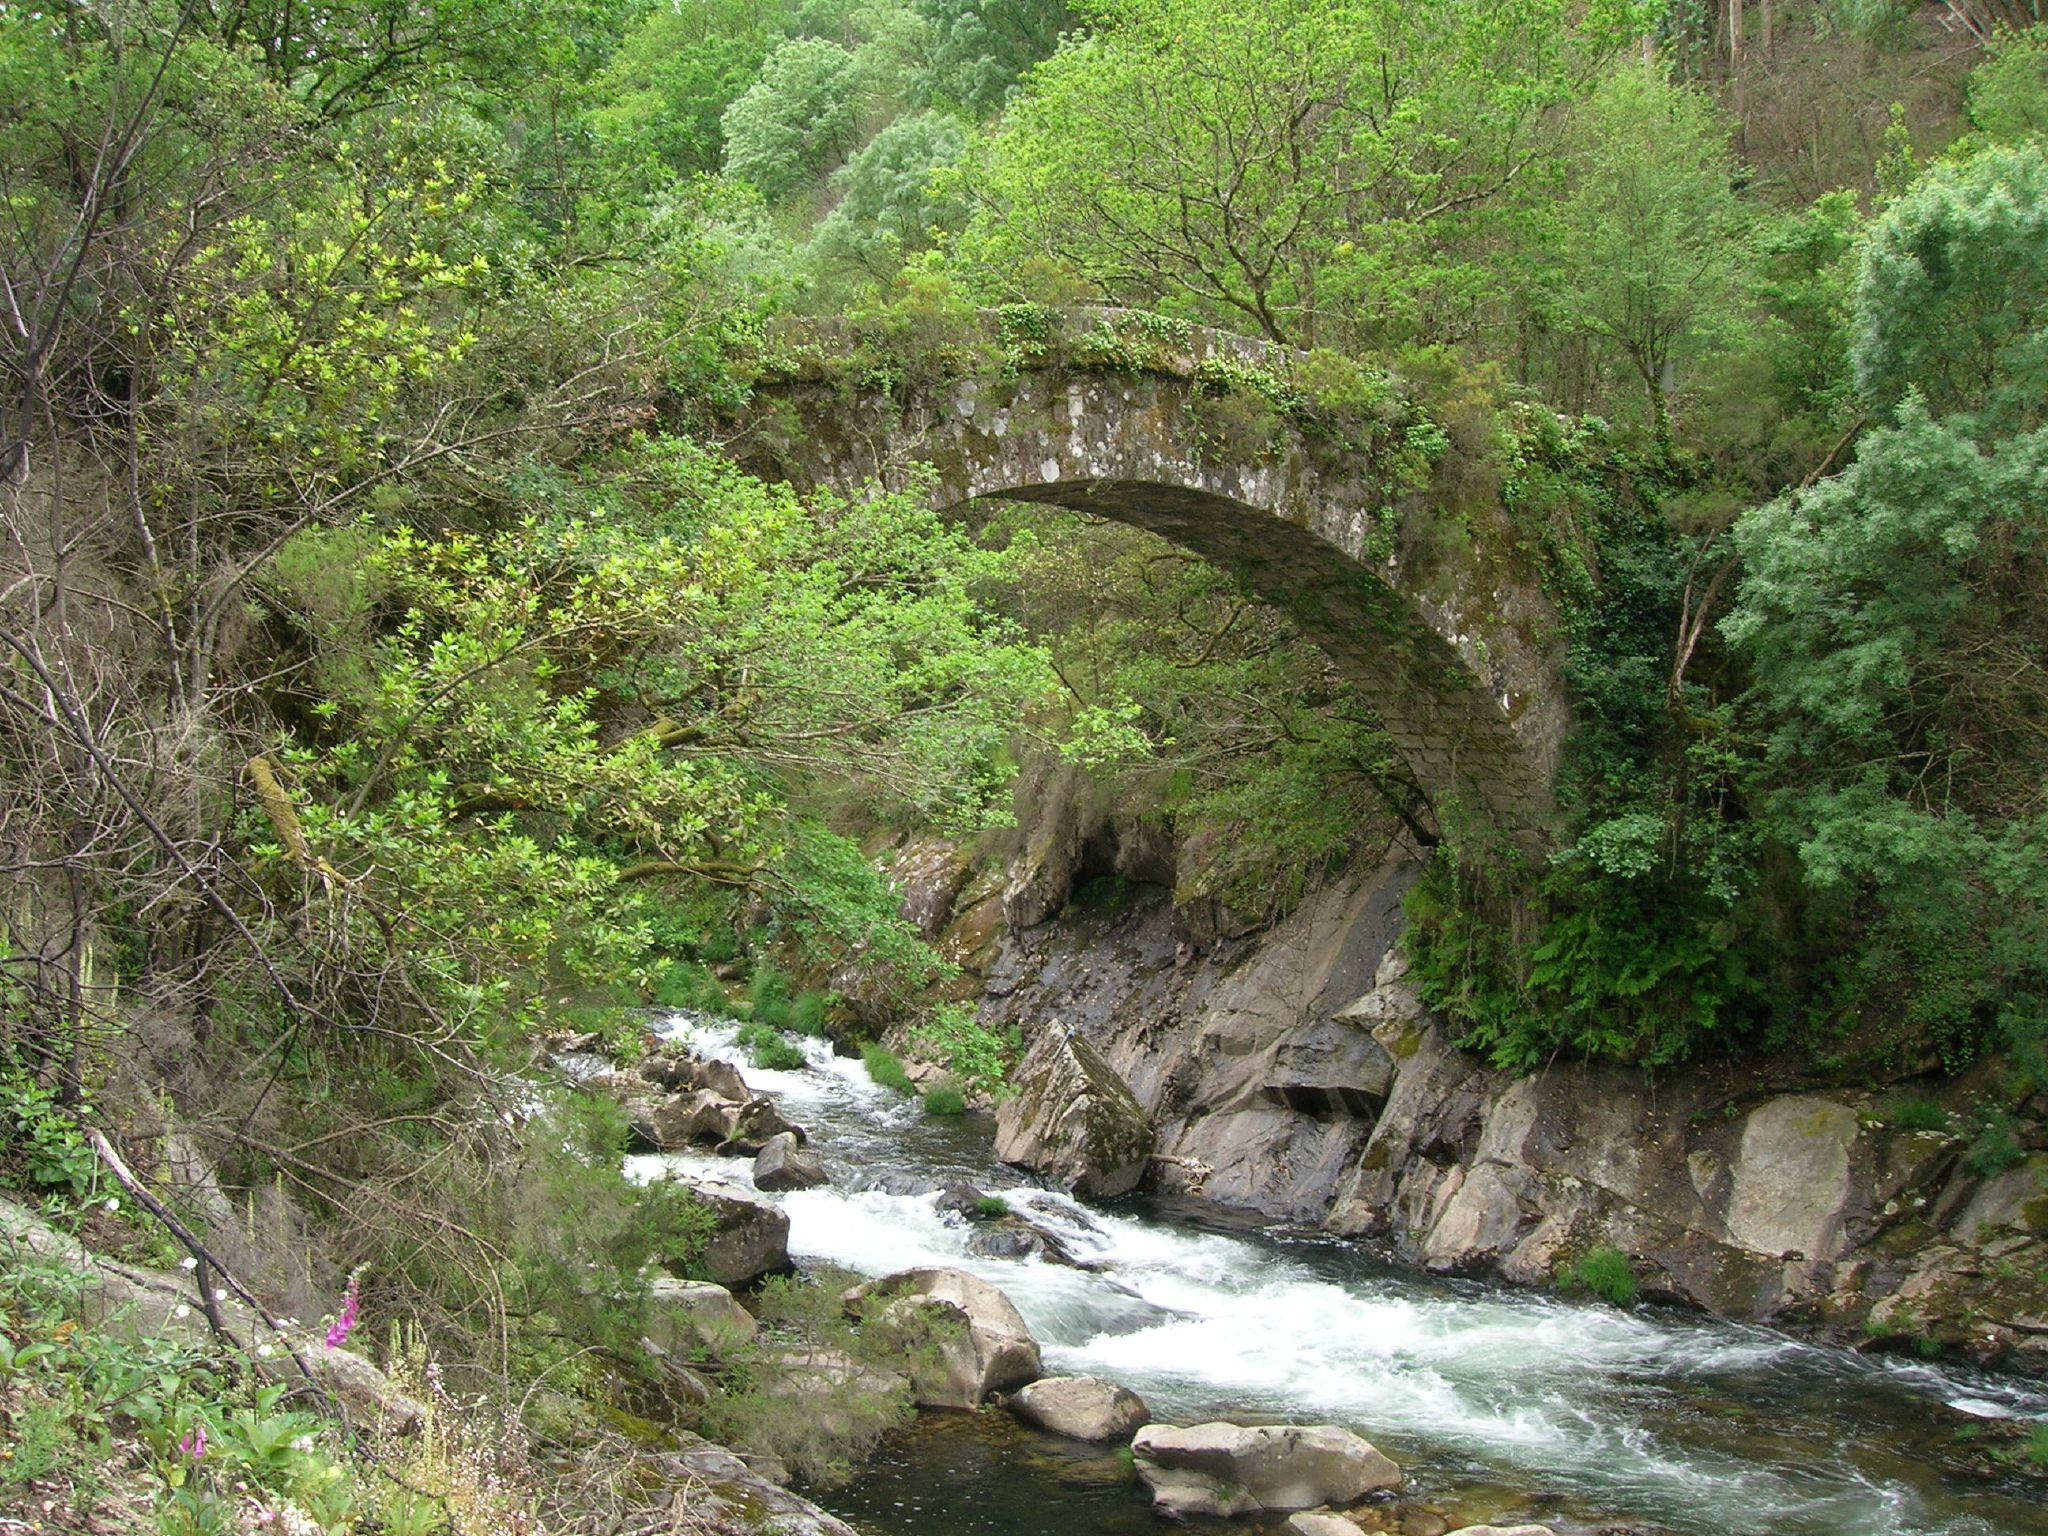 San Xurxo bridge over the Lerez River, in Cotobade